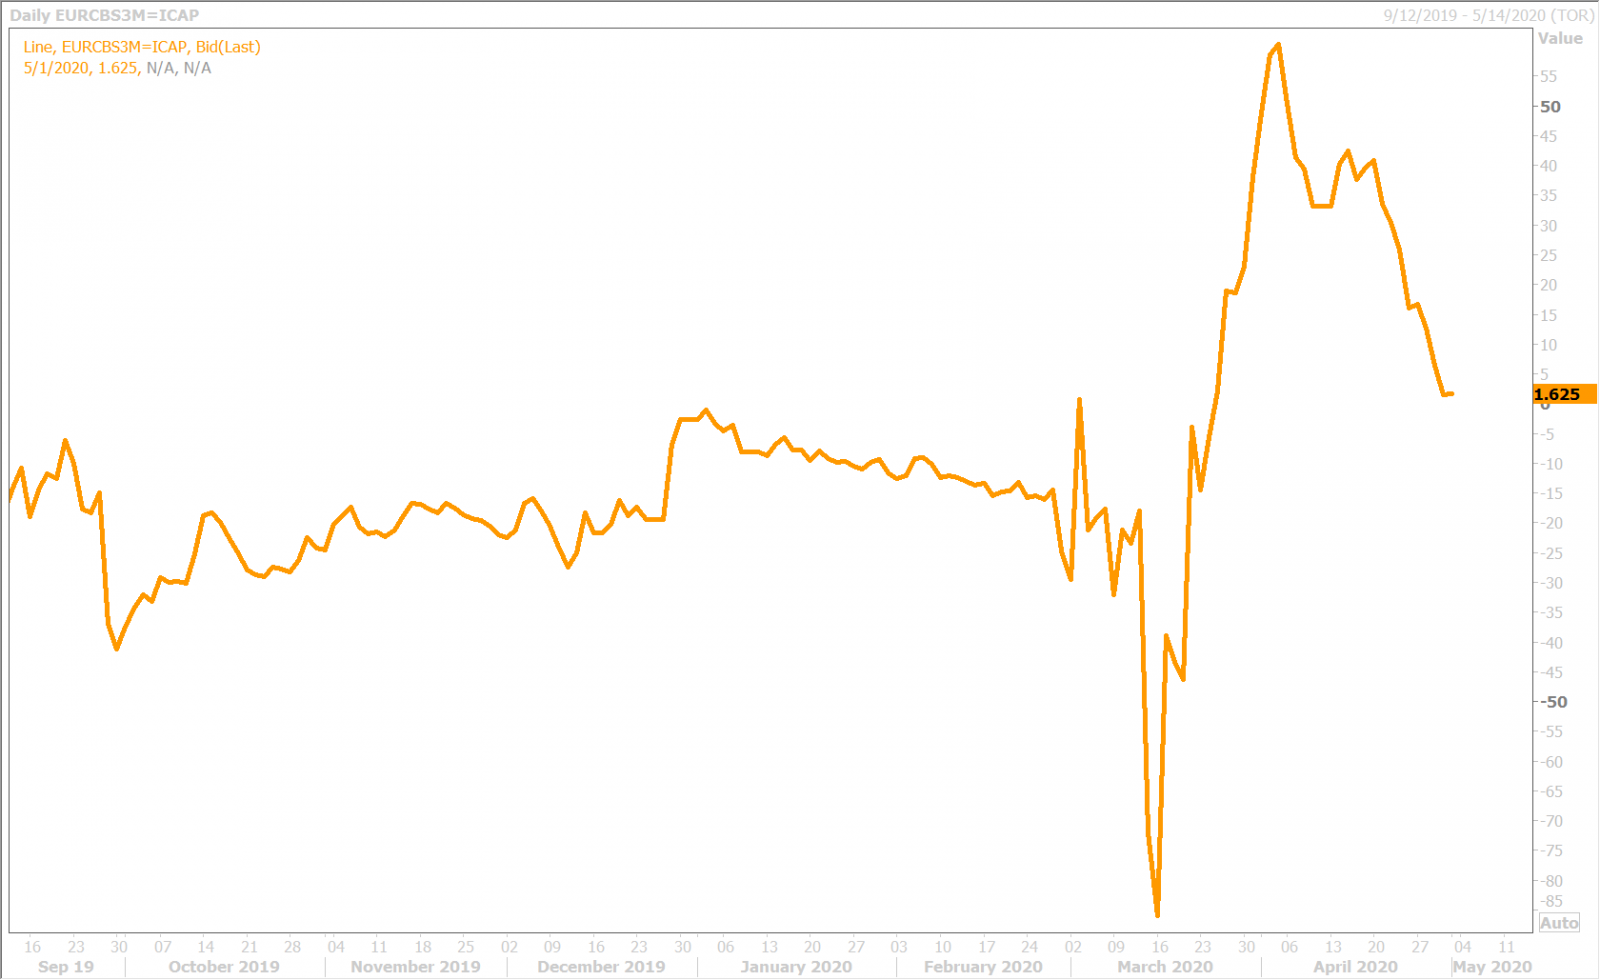 EURUSD 3-MONTH CROSS CURRENCY BASIS SWAP DAILY